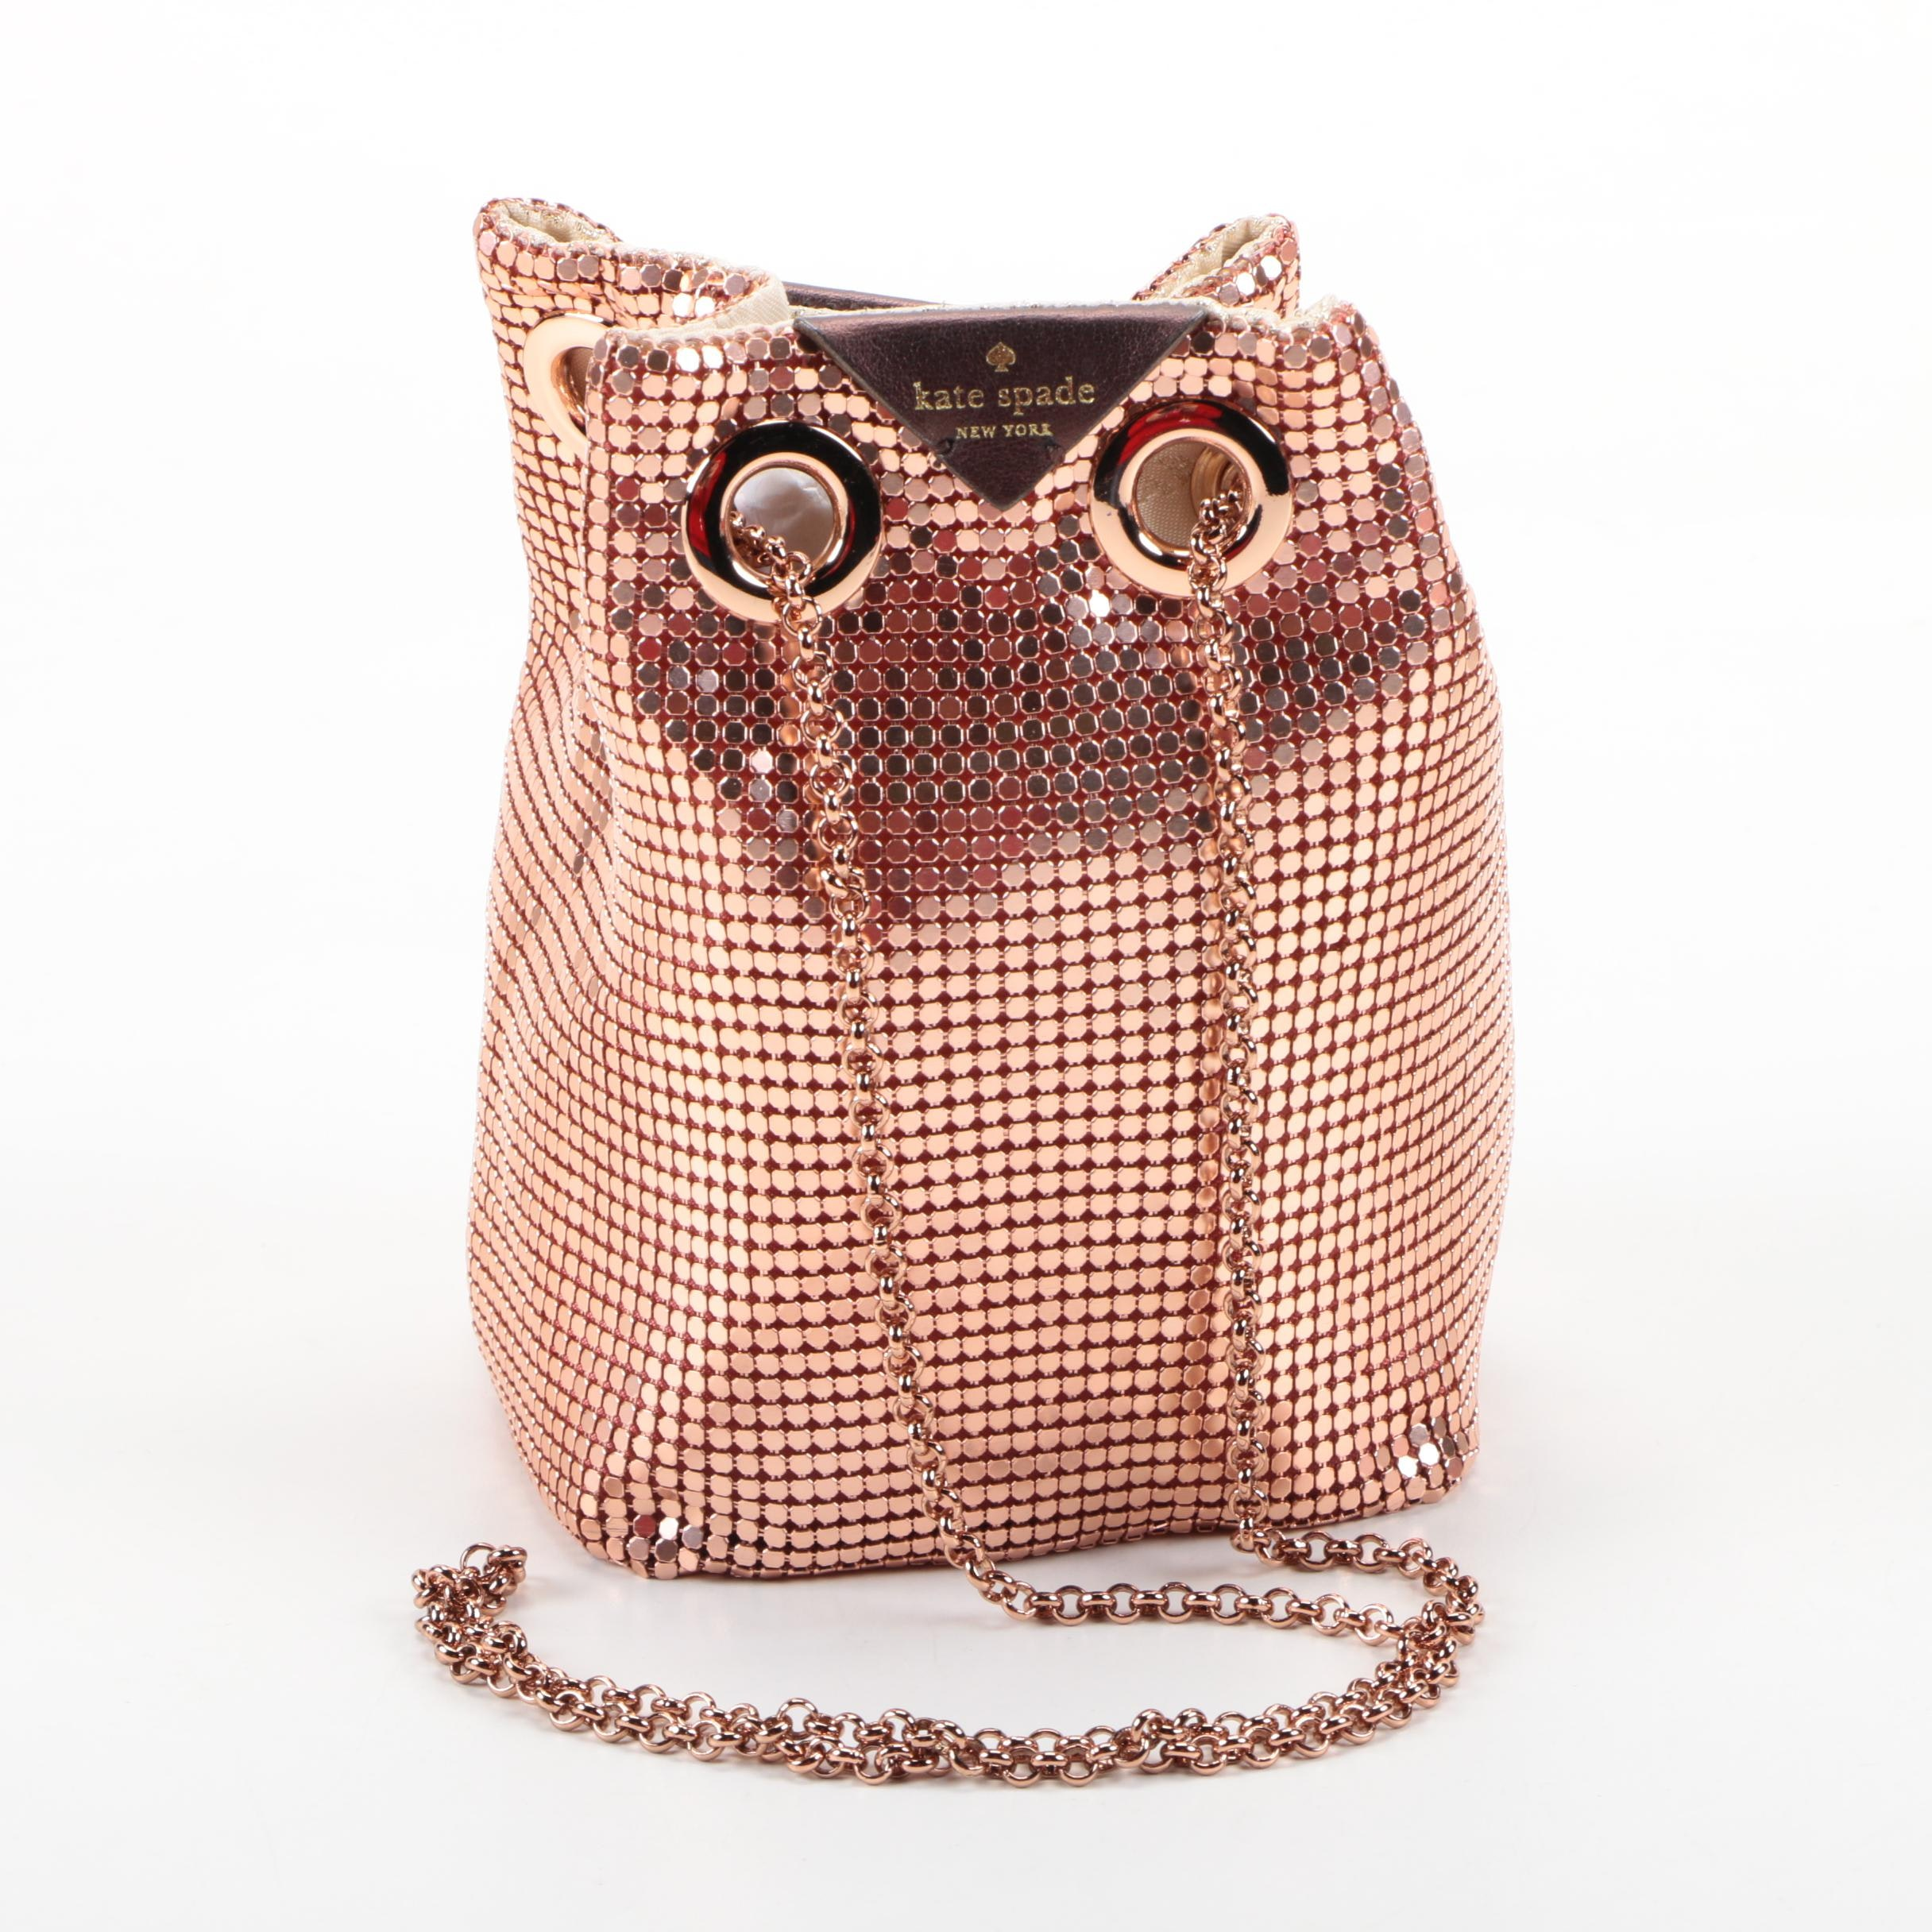 Kate Spade Night Owl Mesh Handbag